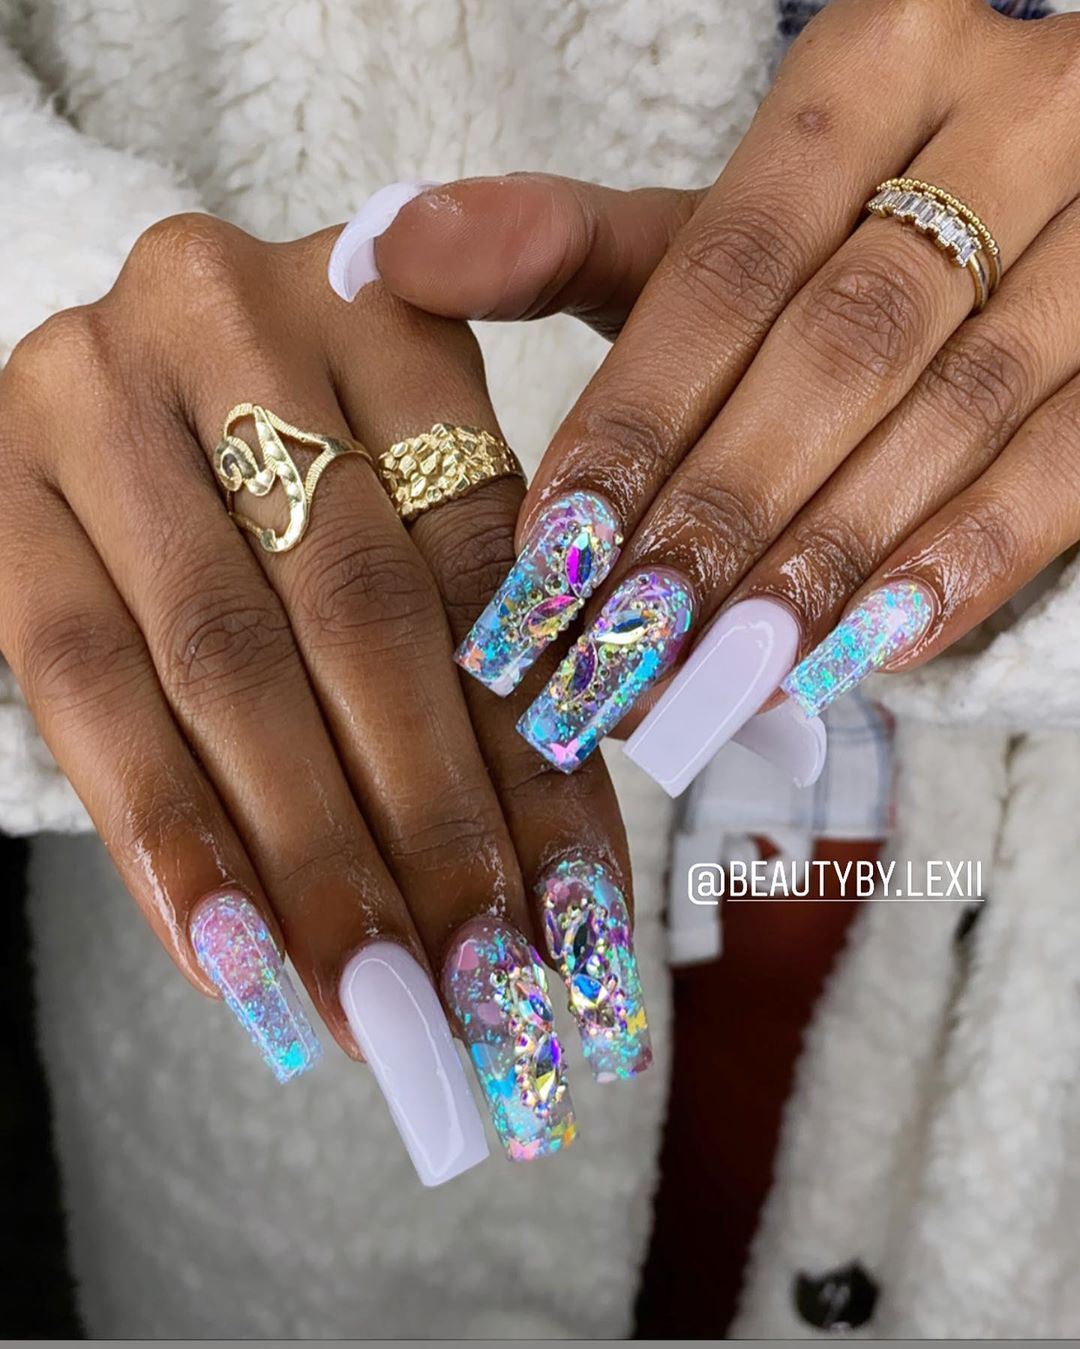 Thetriplethreatherself On Instagram Butterfly Freestyle Need An Appointment I Book Every Sunday In 2020 Acrylic Nails Instagram Story My Books